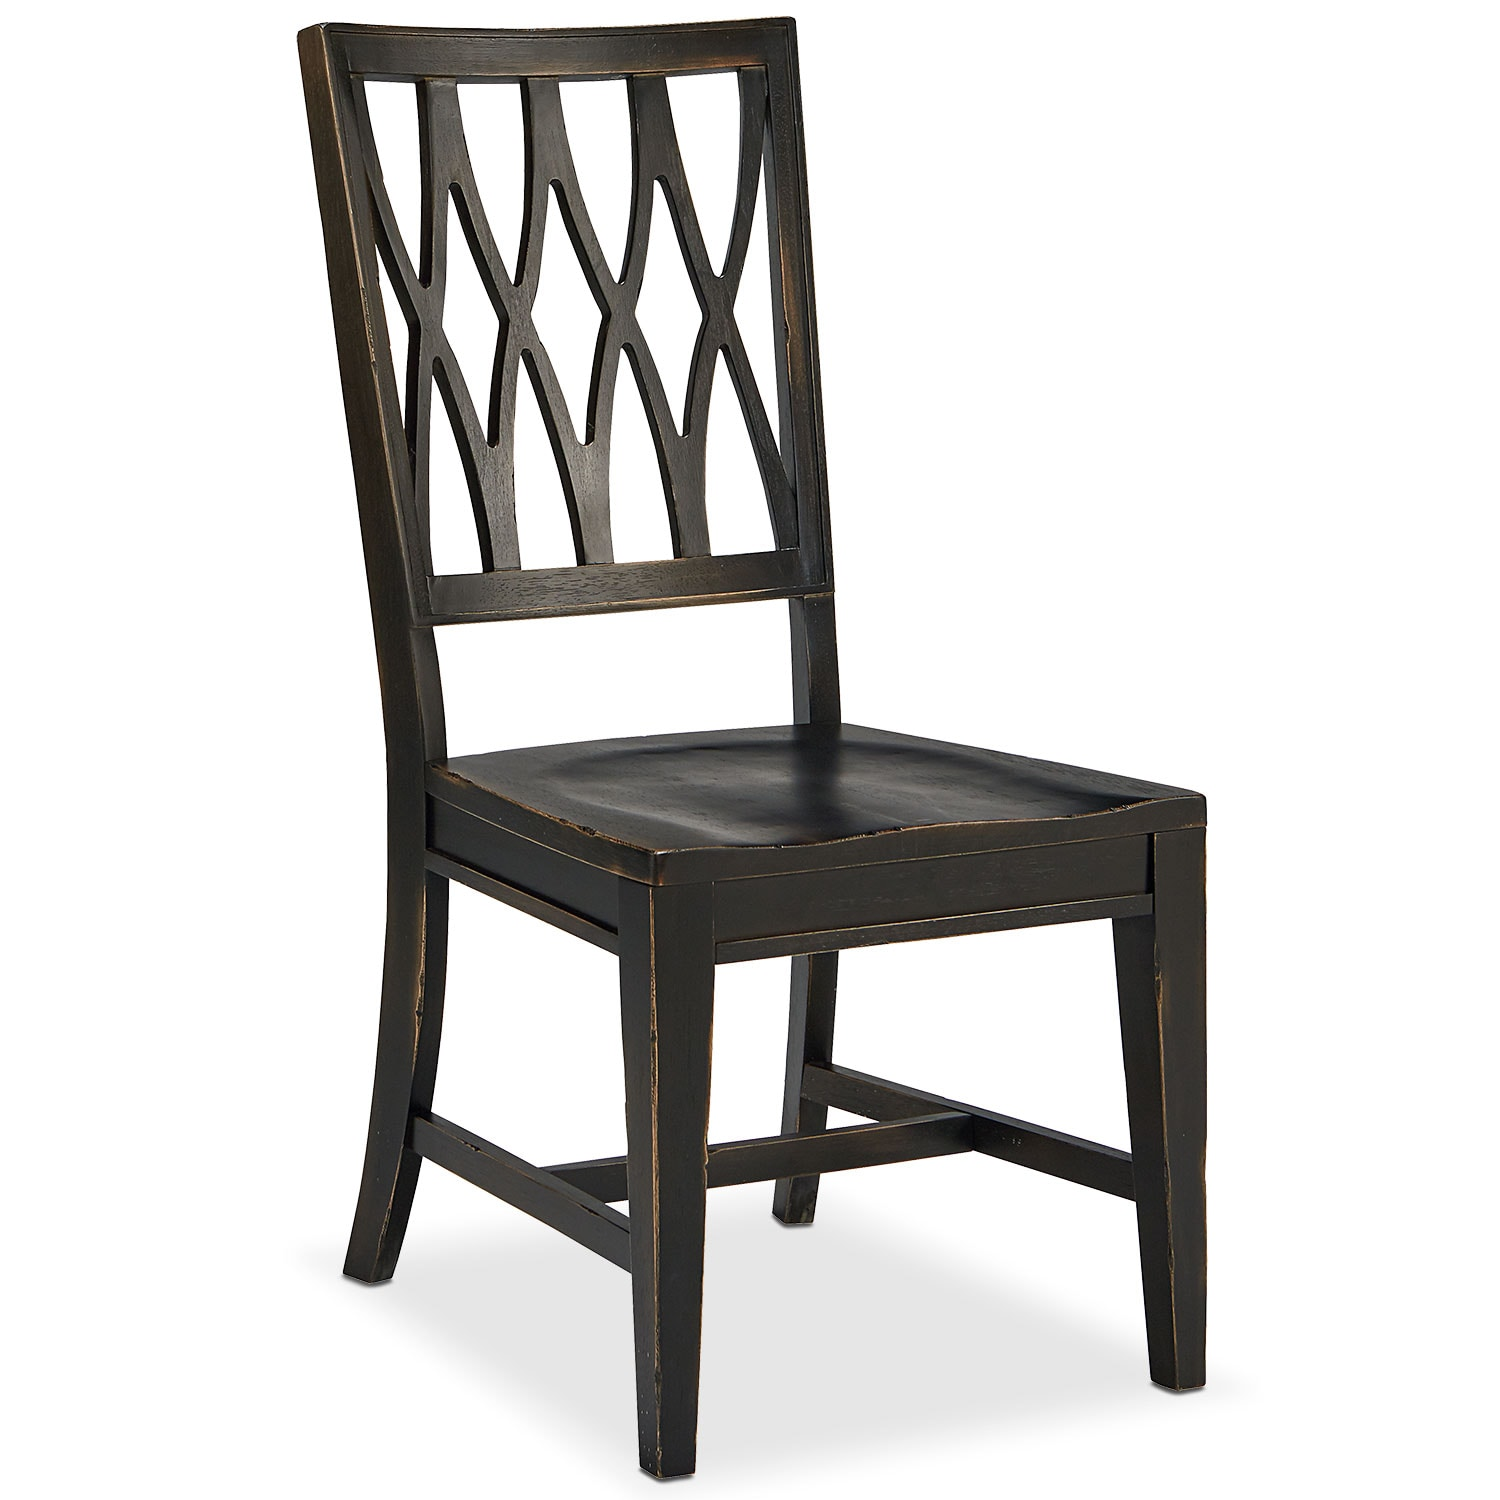 Set of 2 Camden Side Chairs - Chimney